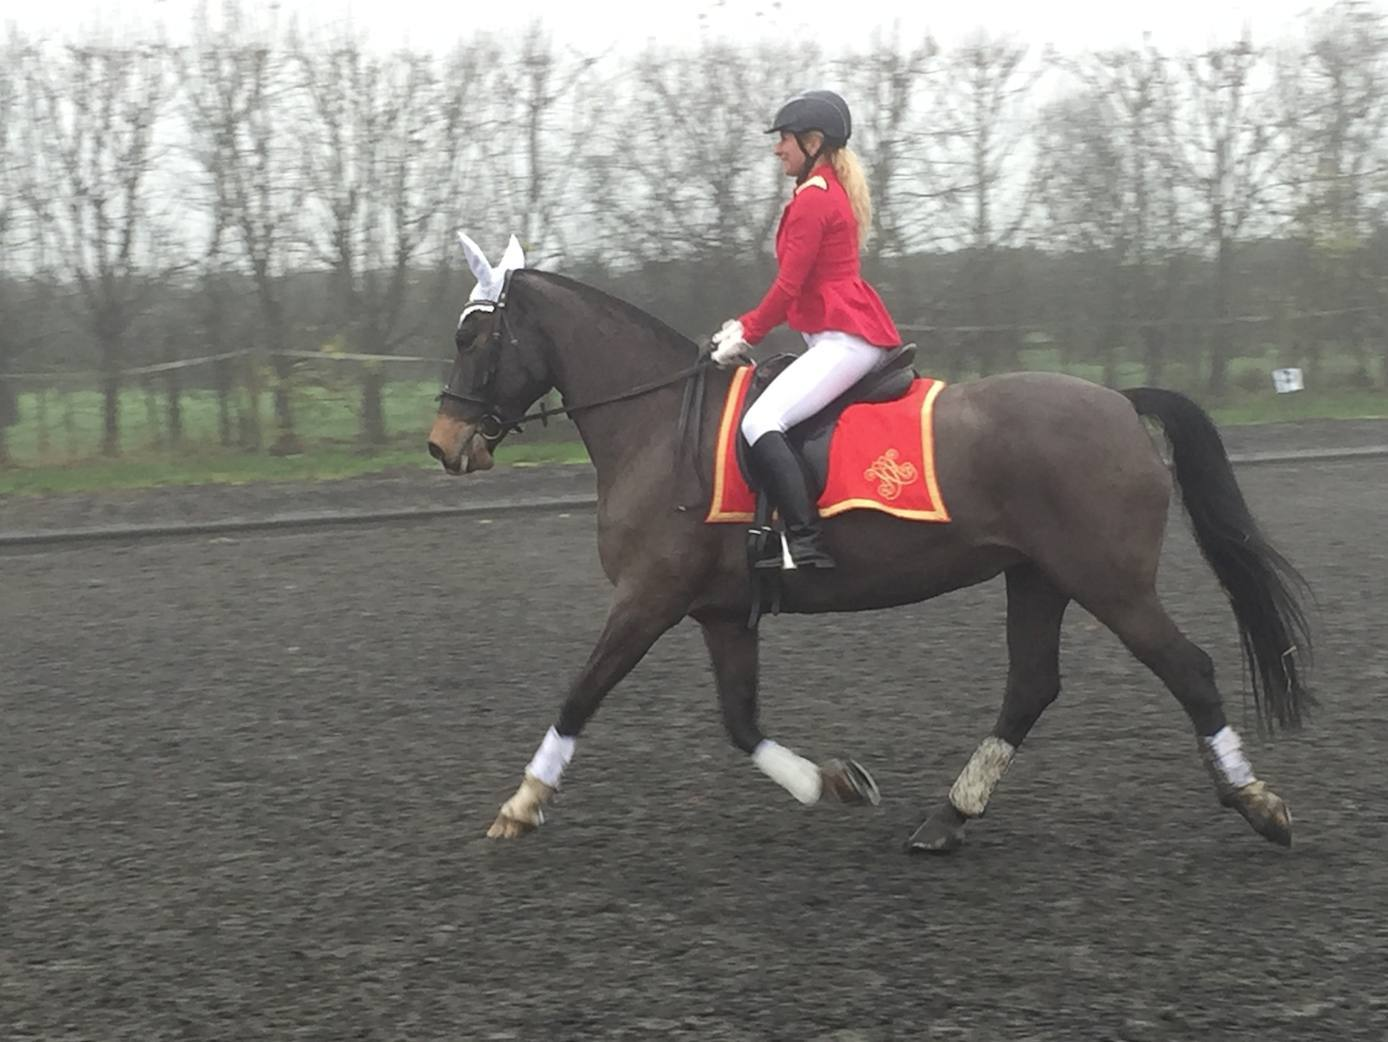 Hawthorne & Heaney Does Dressage Costumes London Hand Embroidery